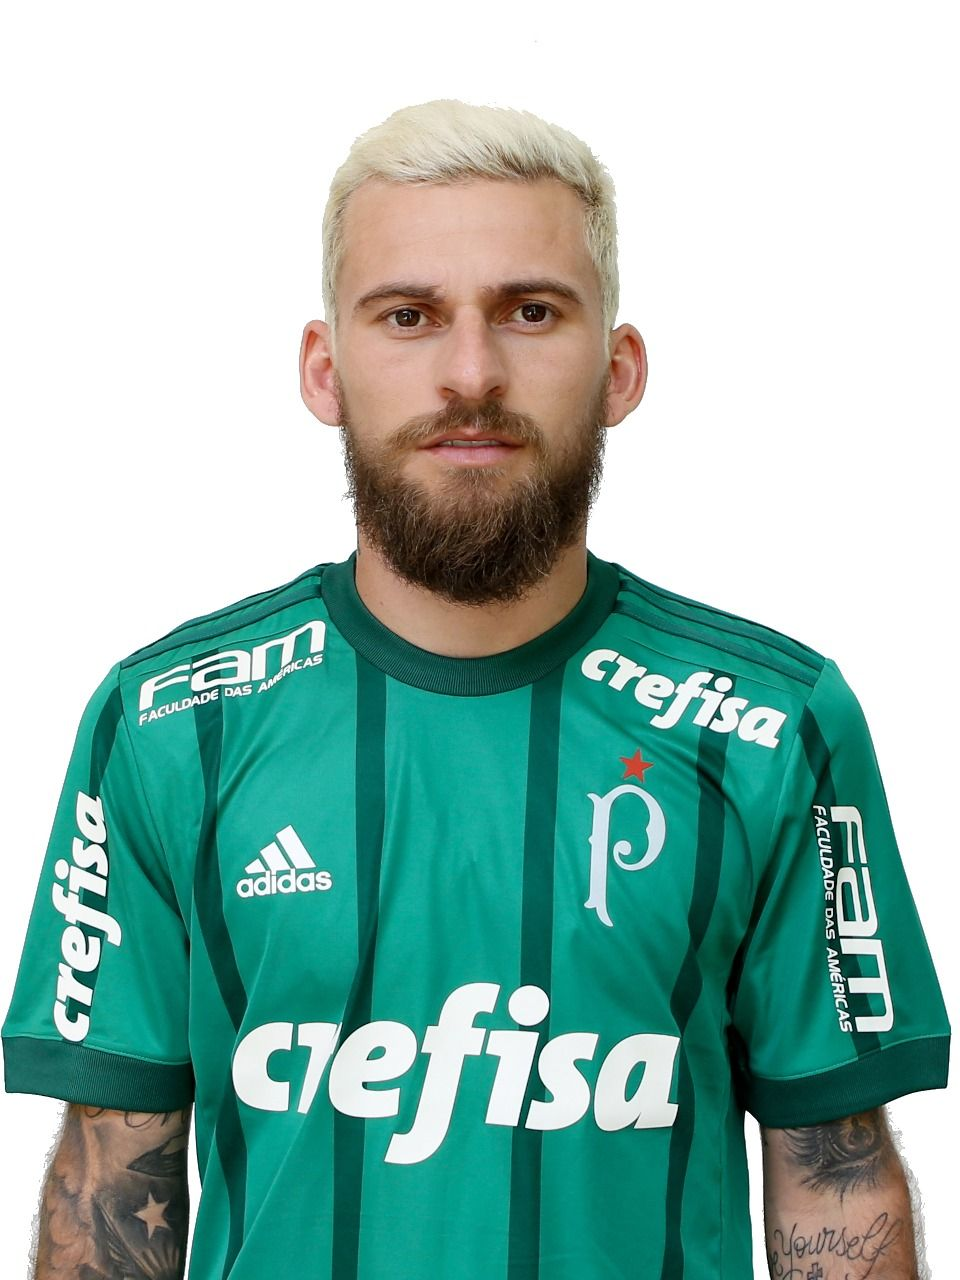 Lucas lima png 1 » PNG Image - Free PNG Archive   Lucas, Png, Free png  downloads